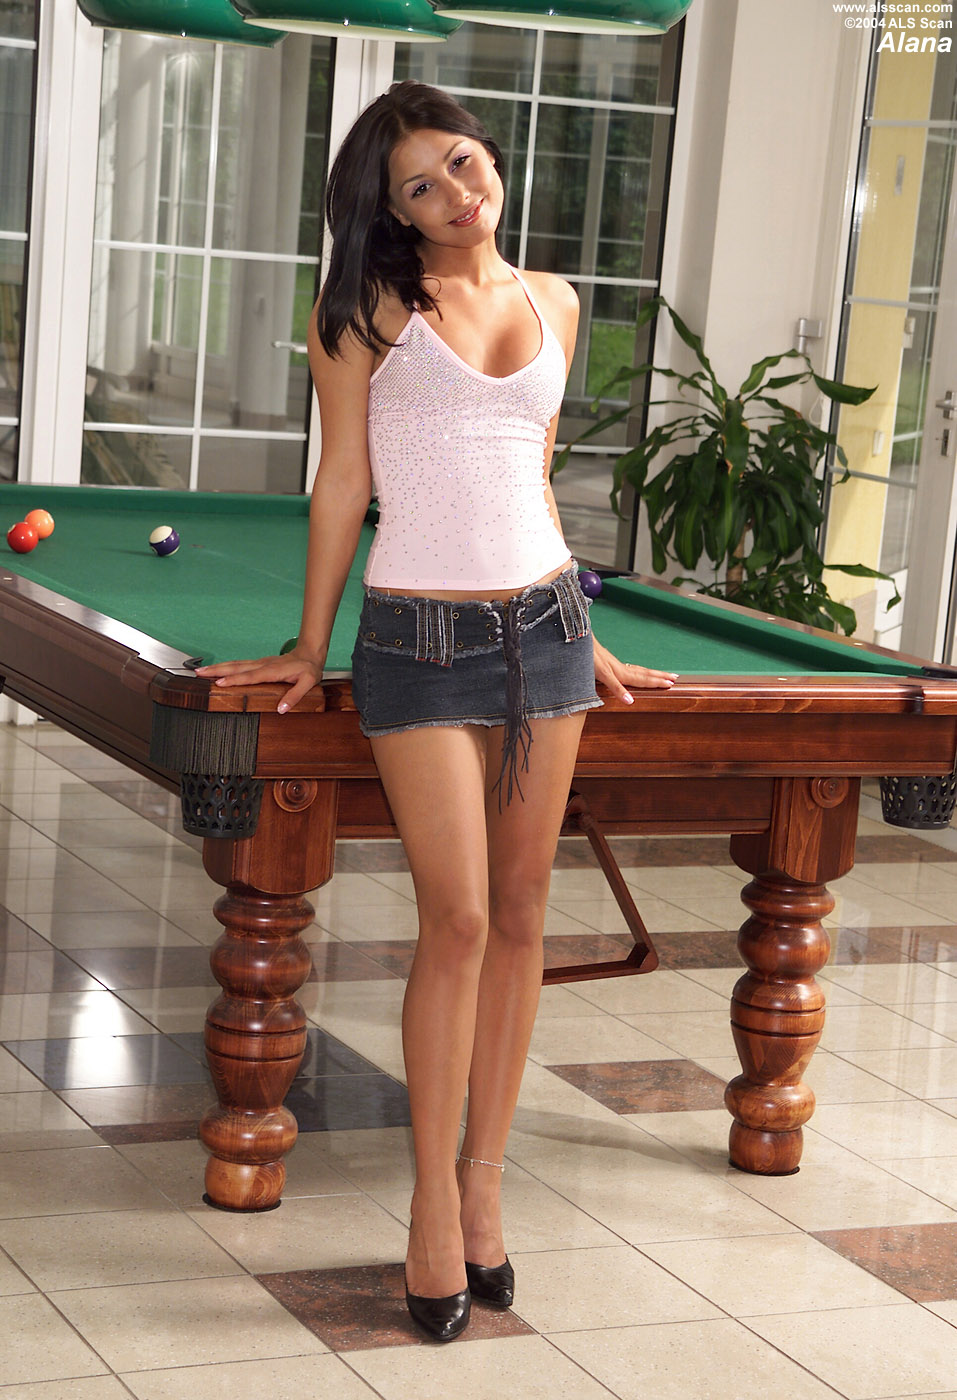 Alana - Alana Plays Billiards